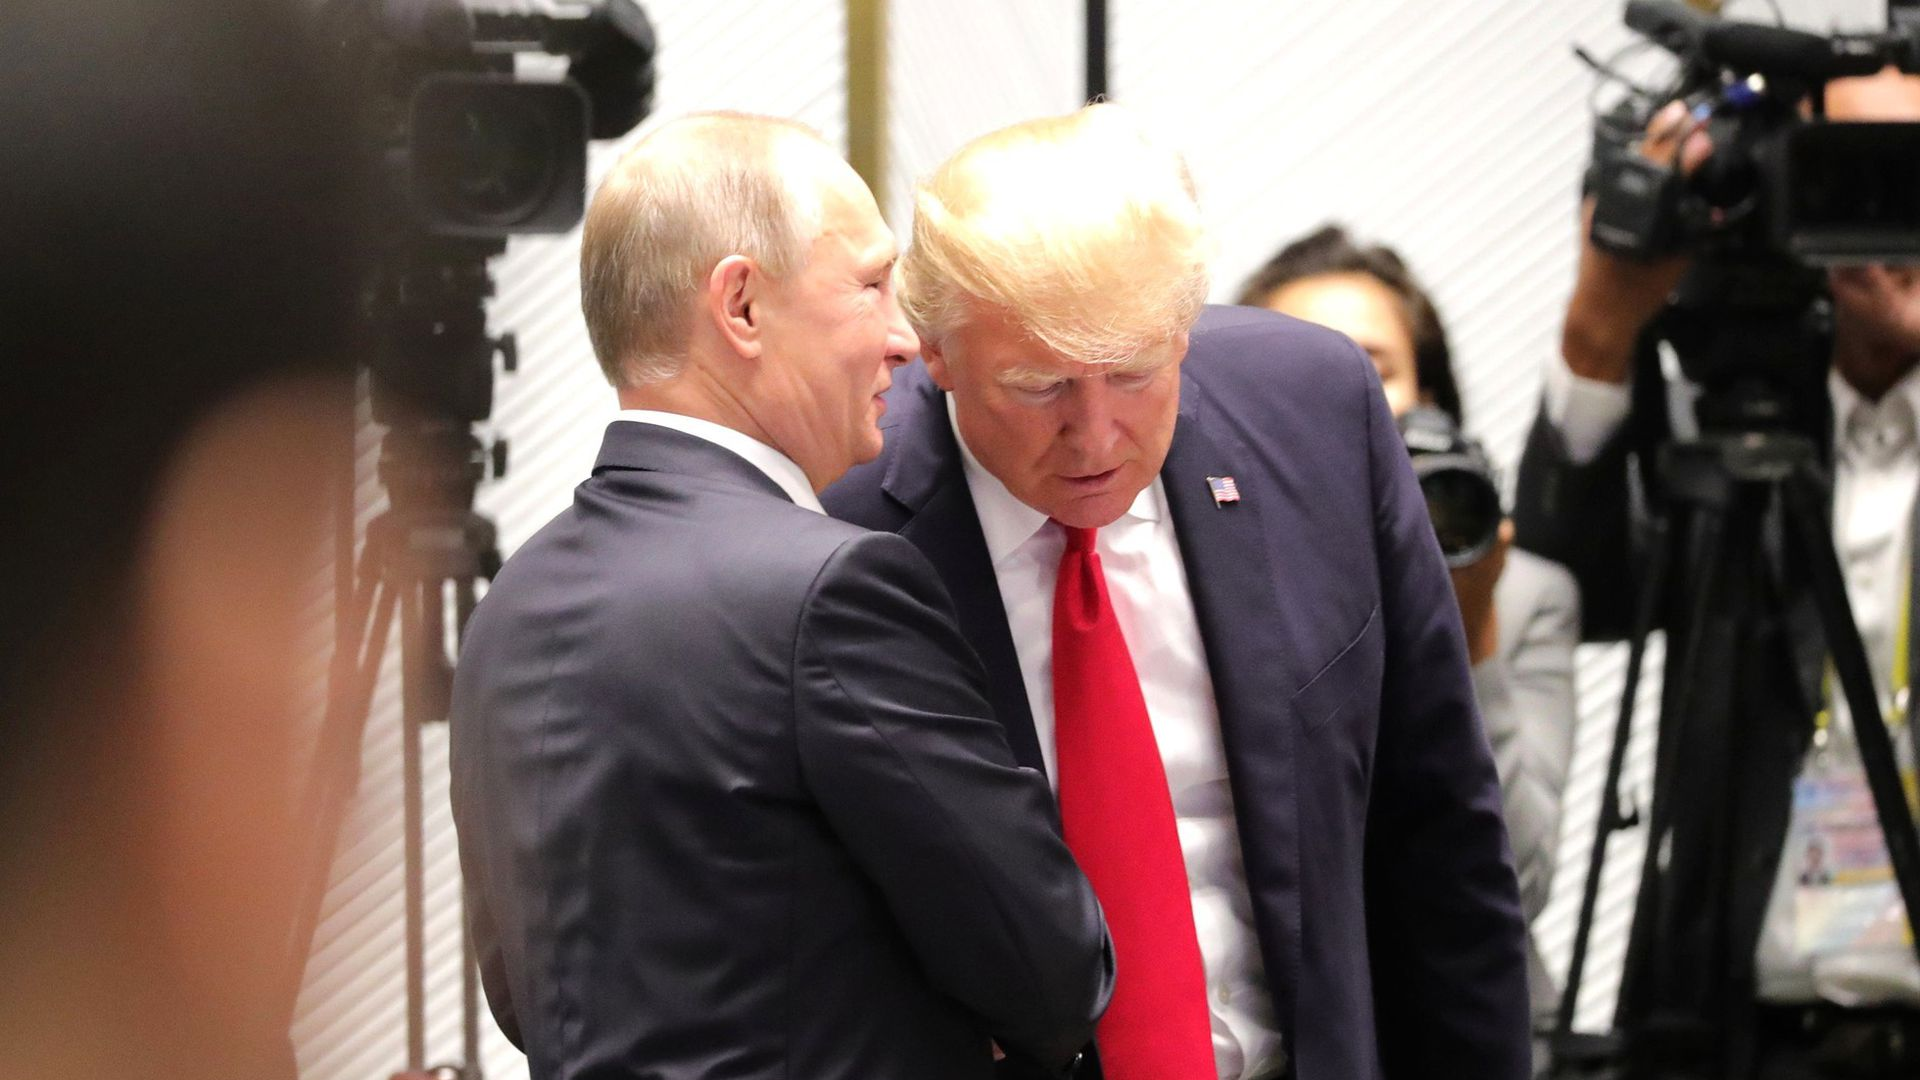 Trump and Putin shake hands as Putin says something in Trump's ear